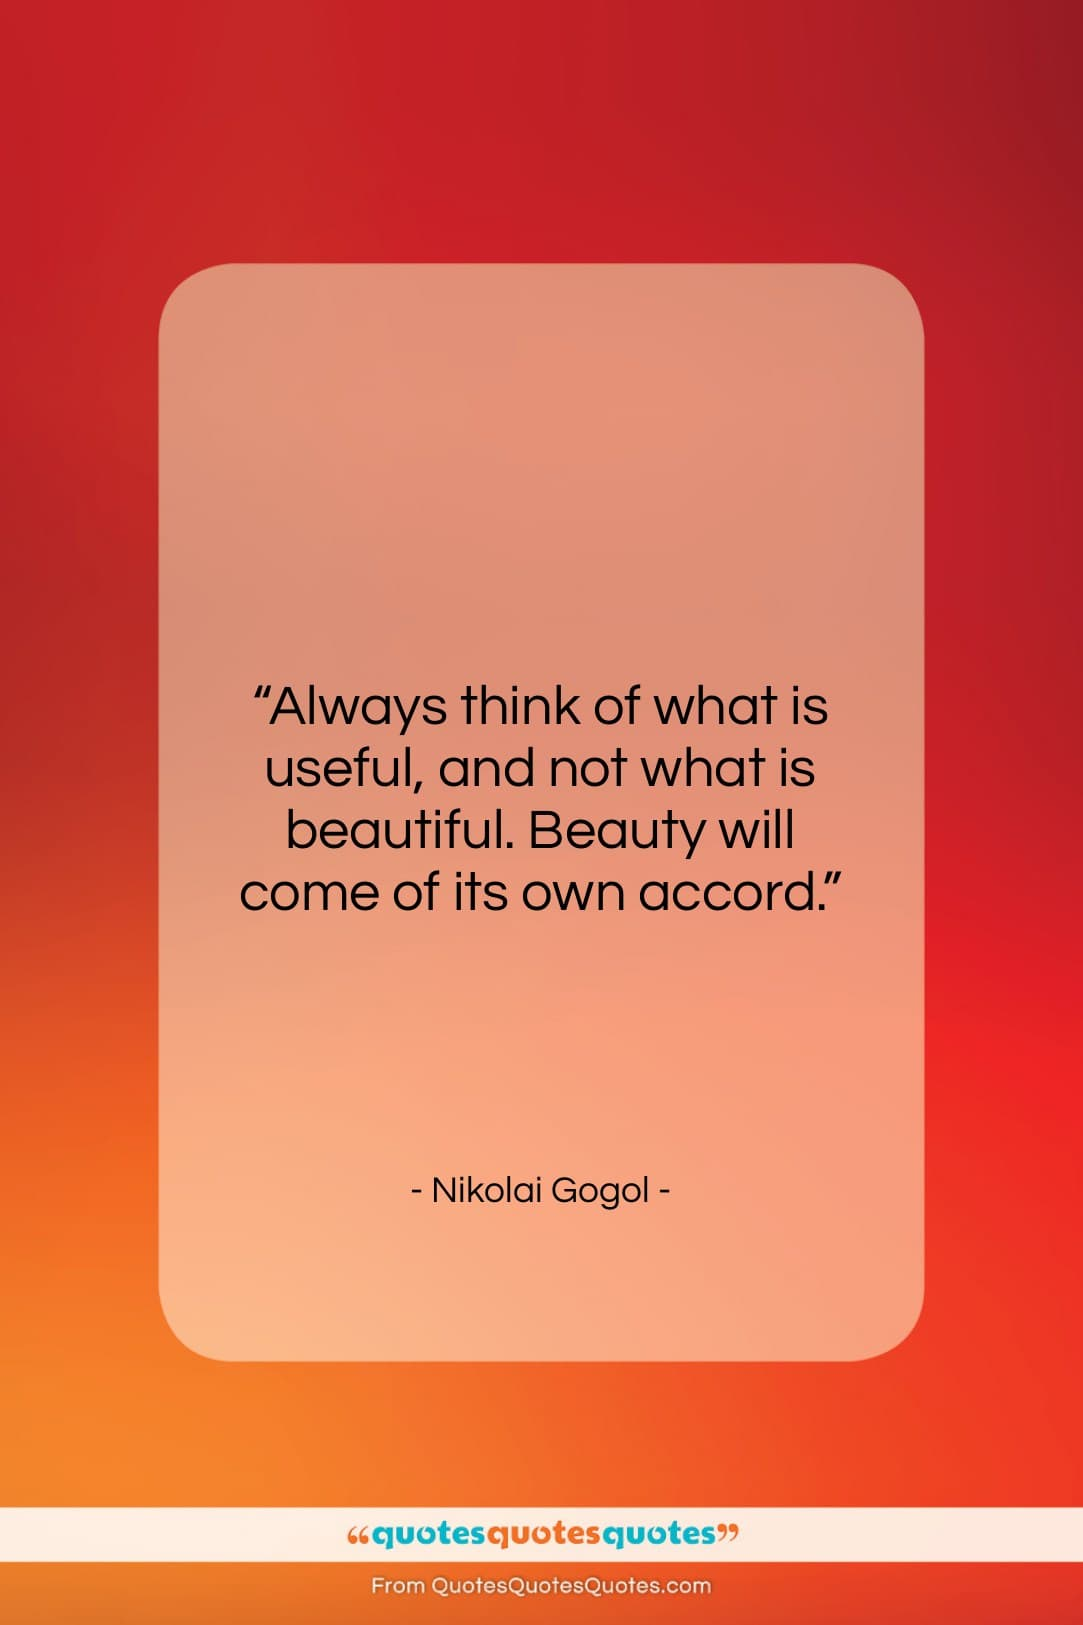 """Nikolai Gogol quote: """"Always think of what is useful, and…""""- at QuotesQuotesQuotes.com"""